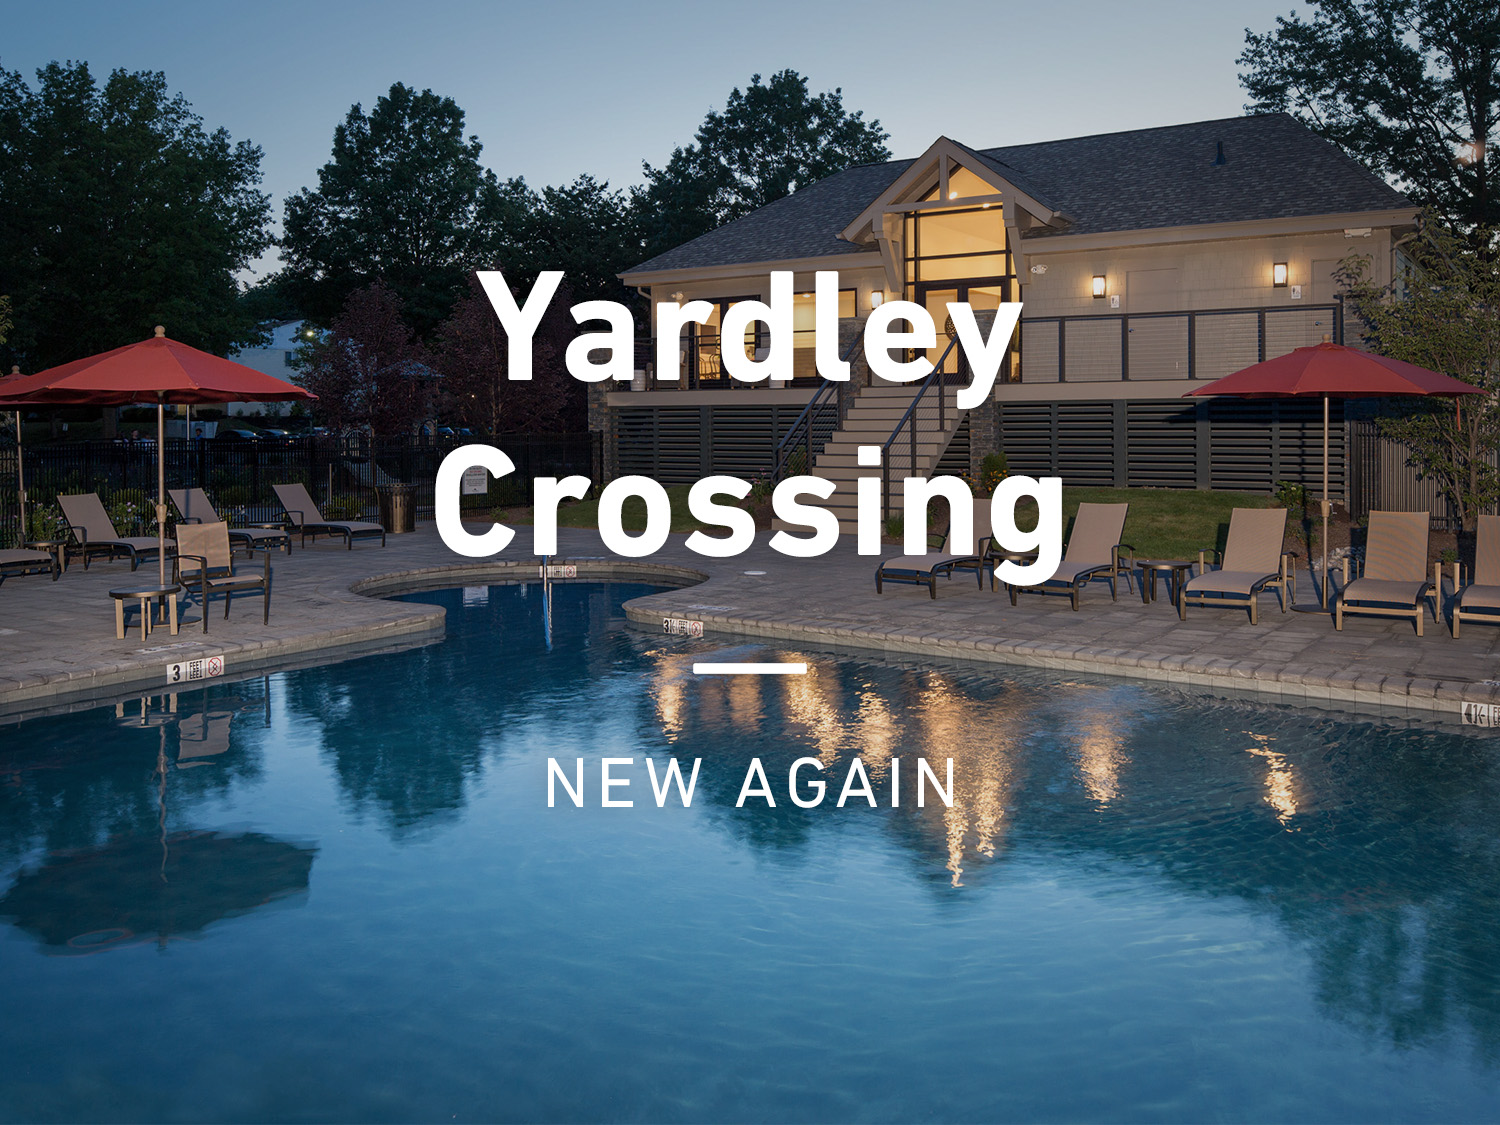 yardley-crossing